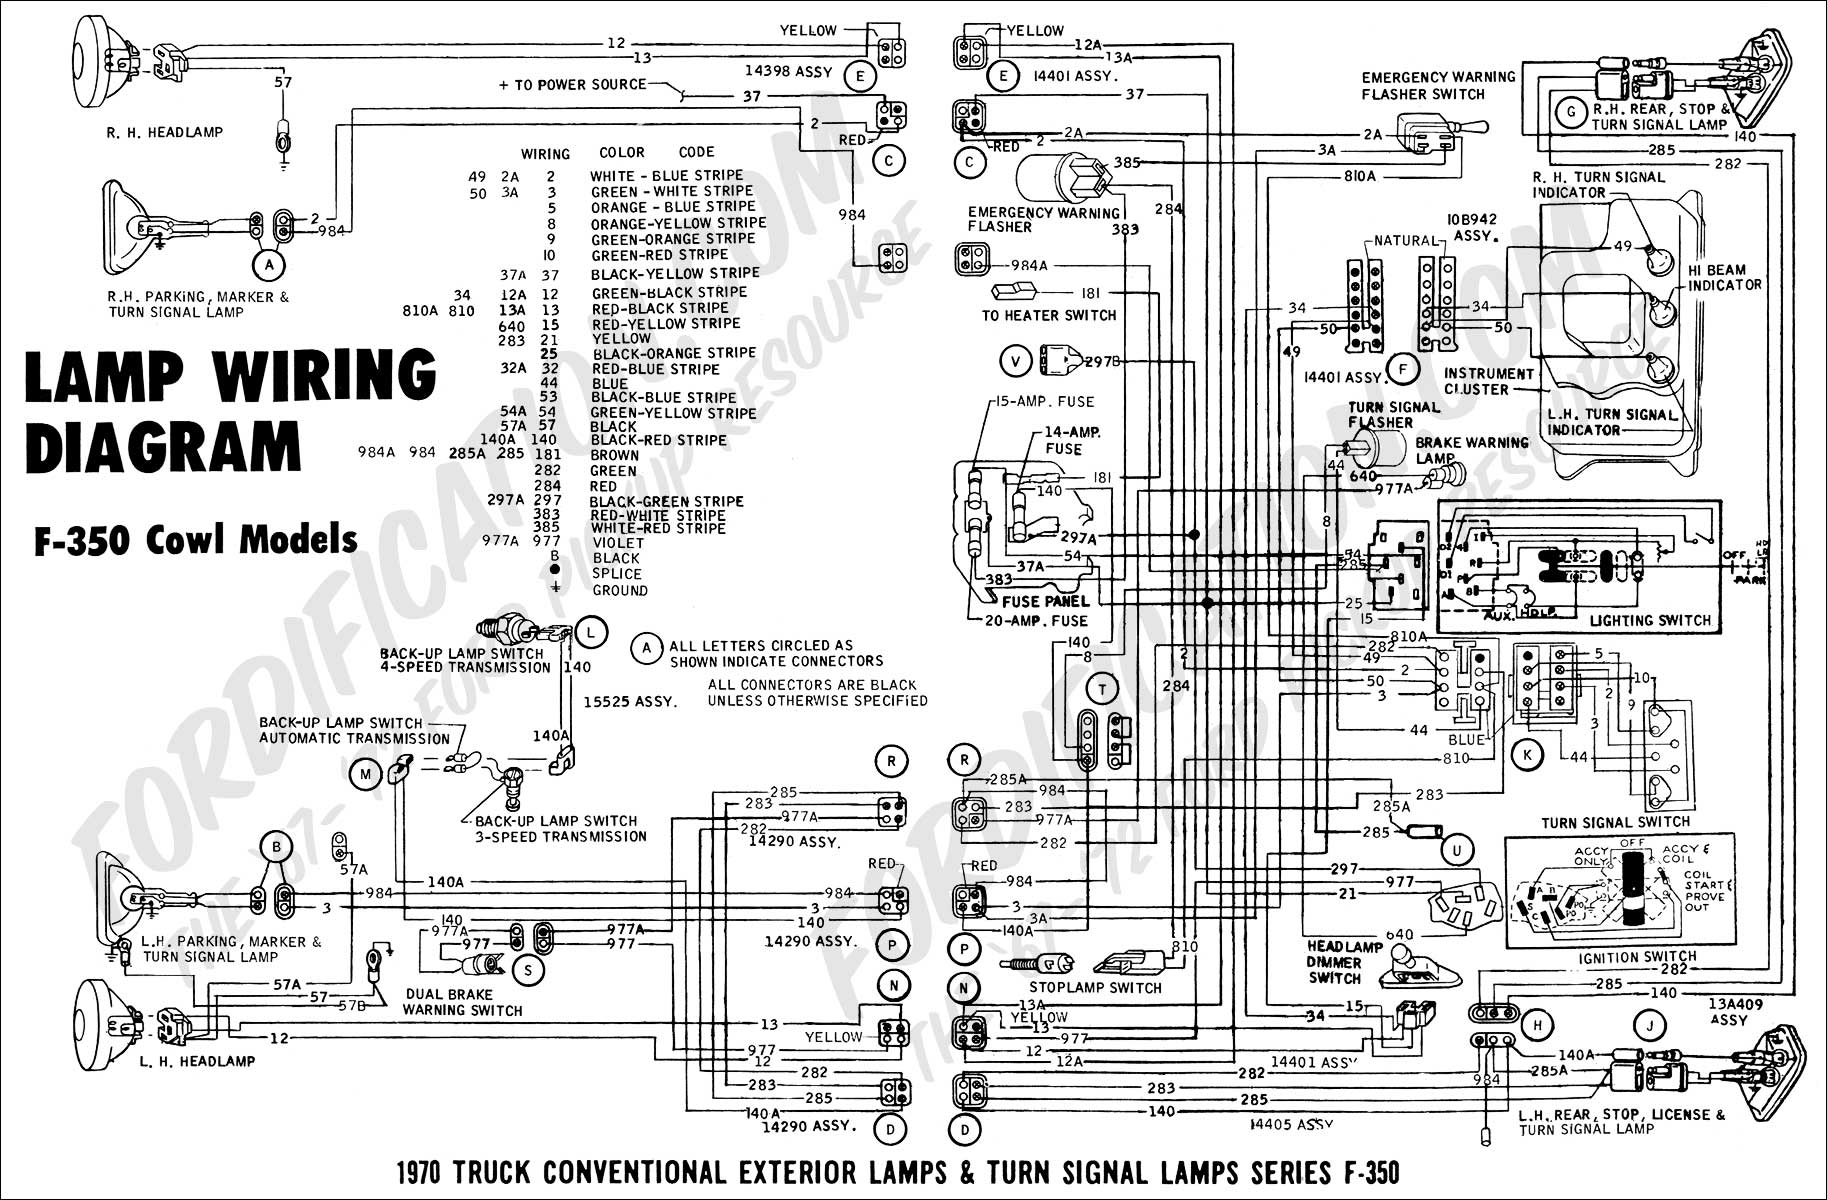 1999 ford f250 radio wiring diagram 12 volt winch dome light switch autos post